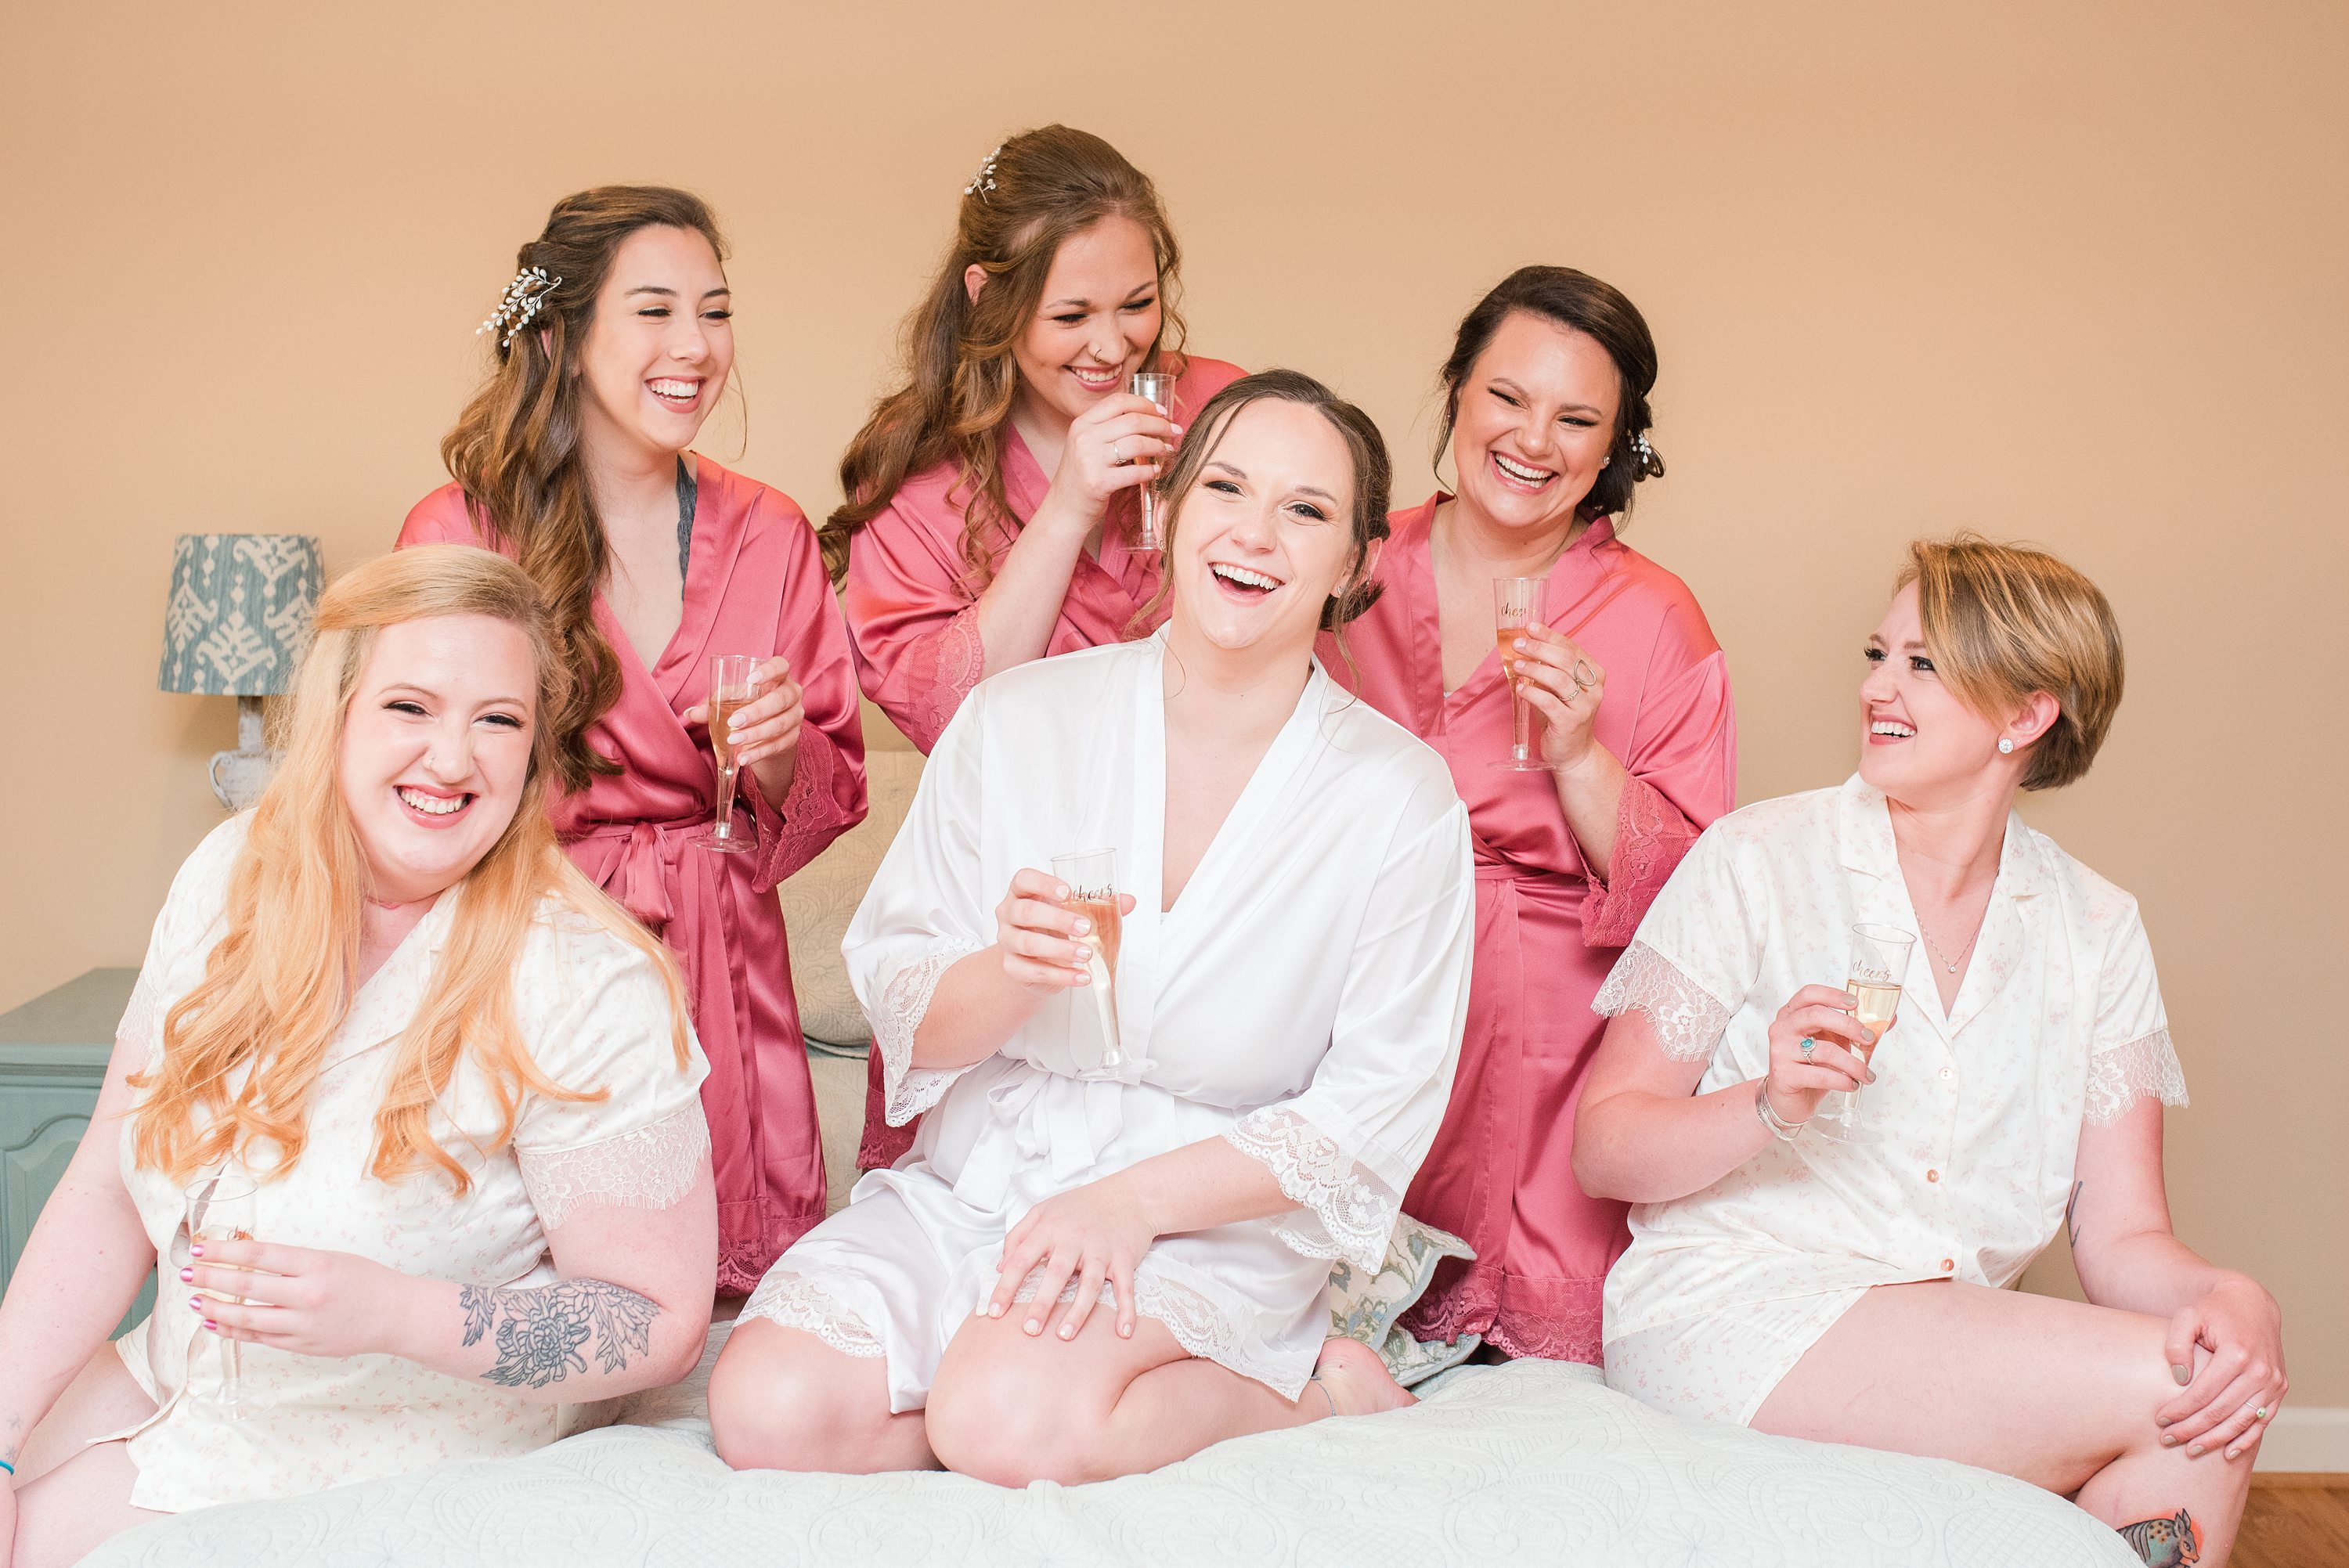 Barn Wedding,Blue Ridge,bride and bridesmaids,wedding robes,bridesmaids,bridesmaids in robes,bridal party on bed,champagne